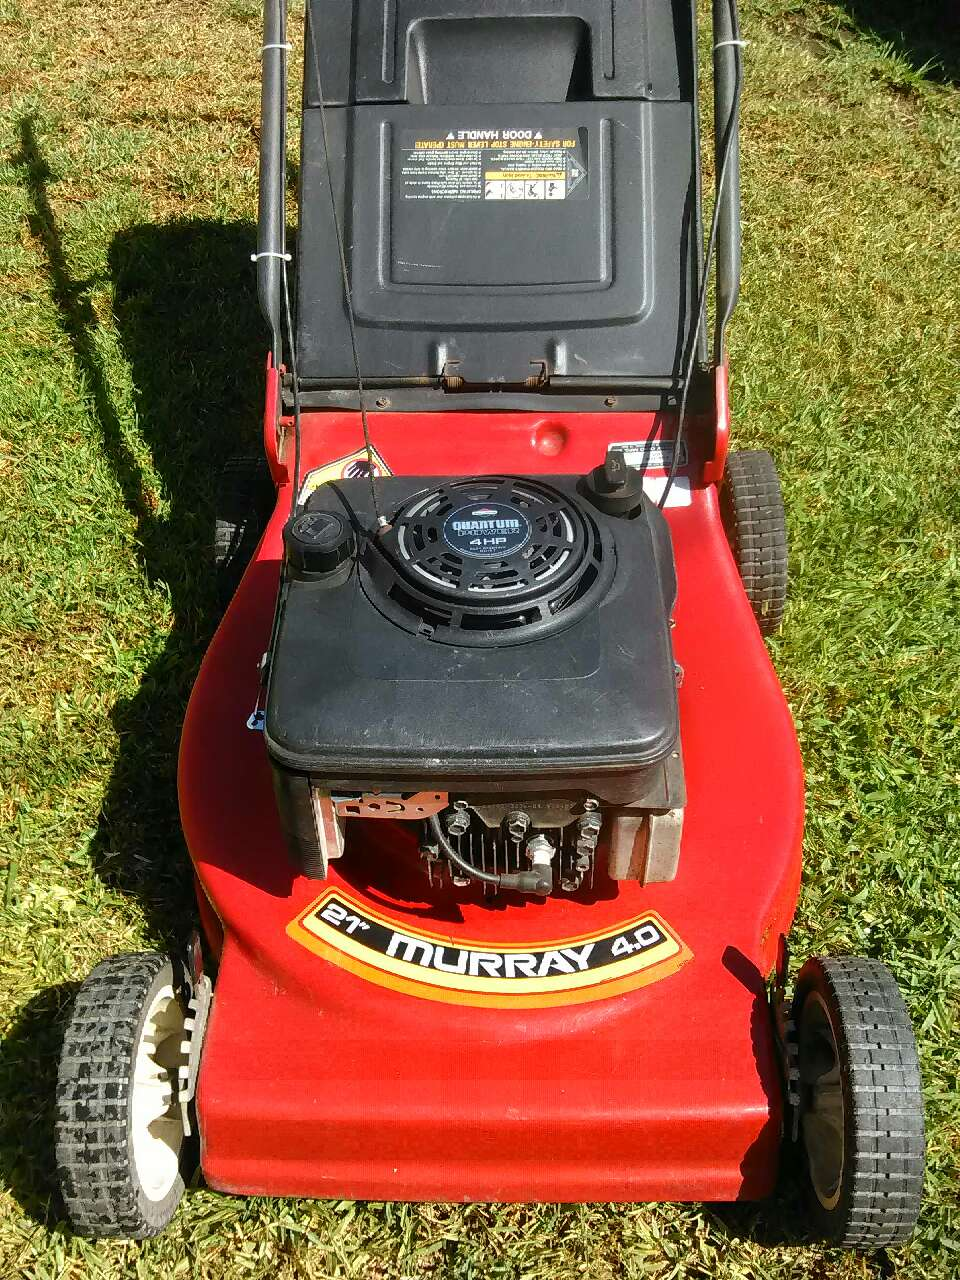 Lawn Mower Grill : Used murray lawn tractor model grill for sale